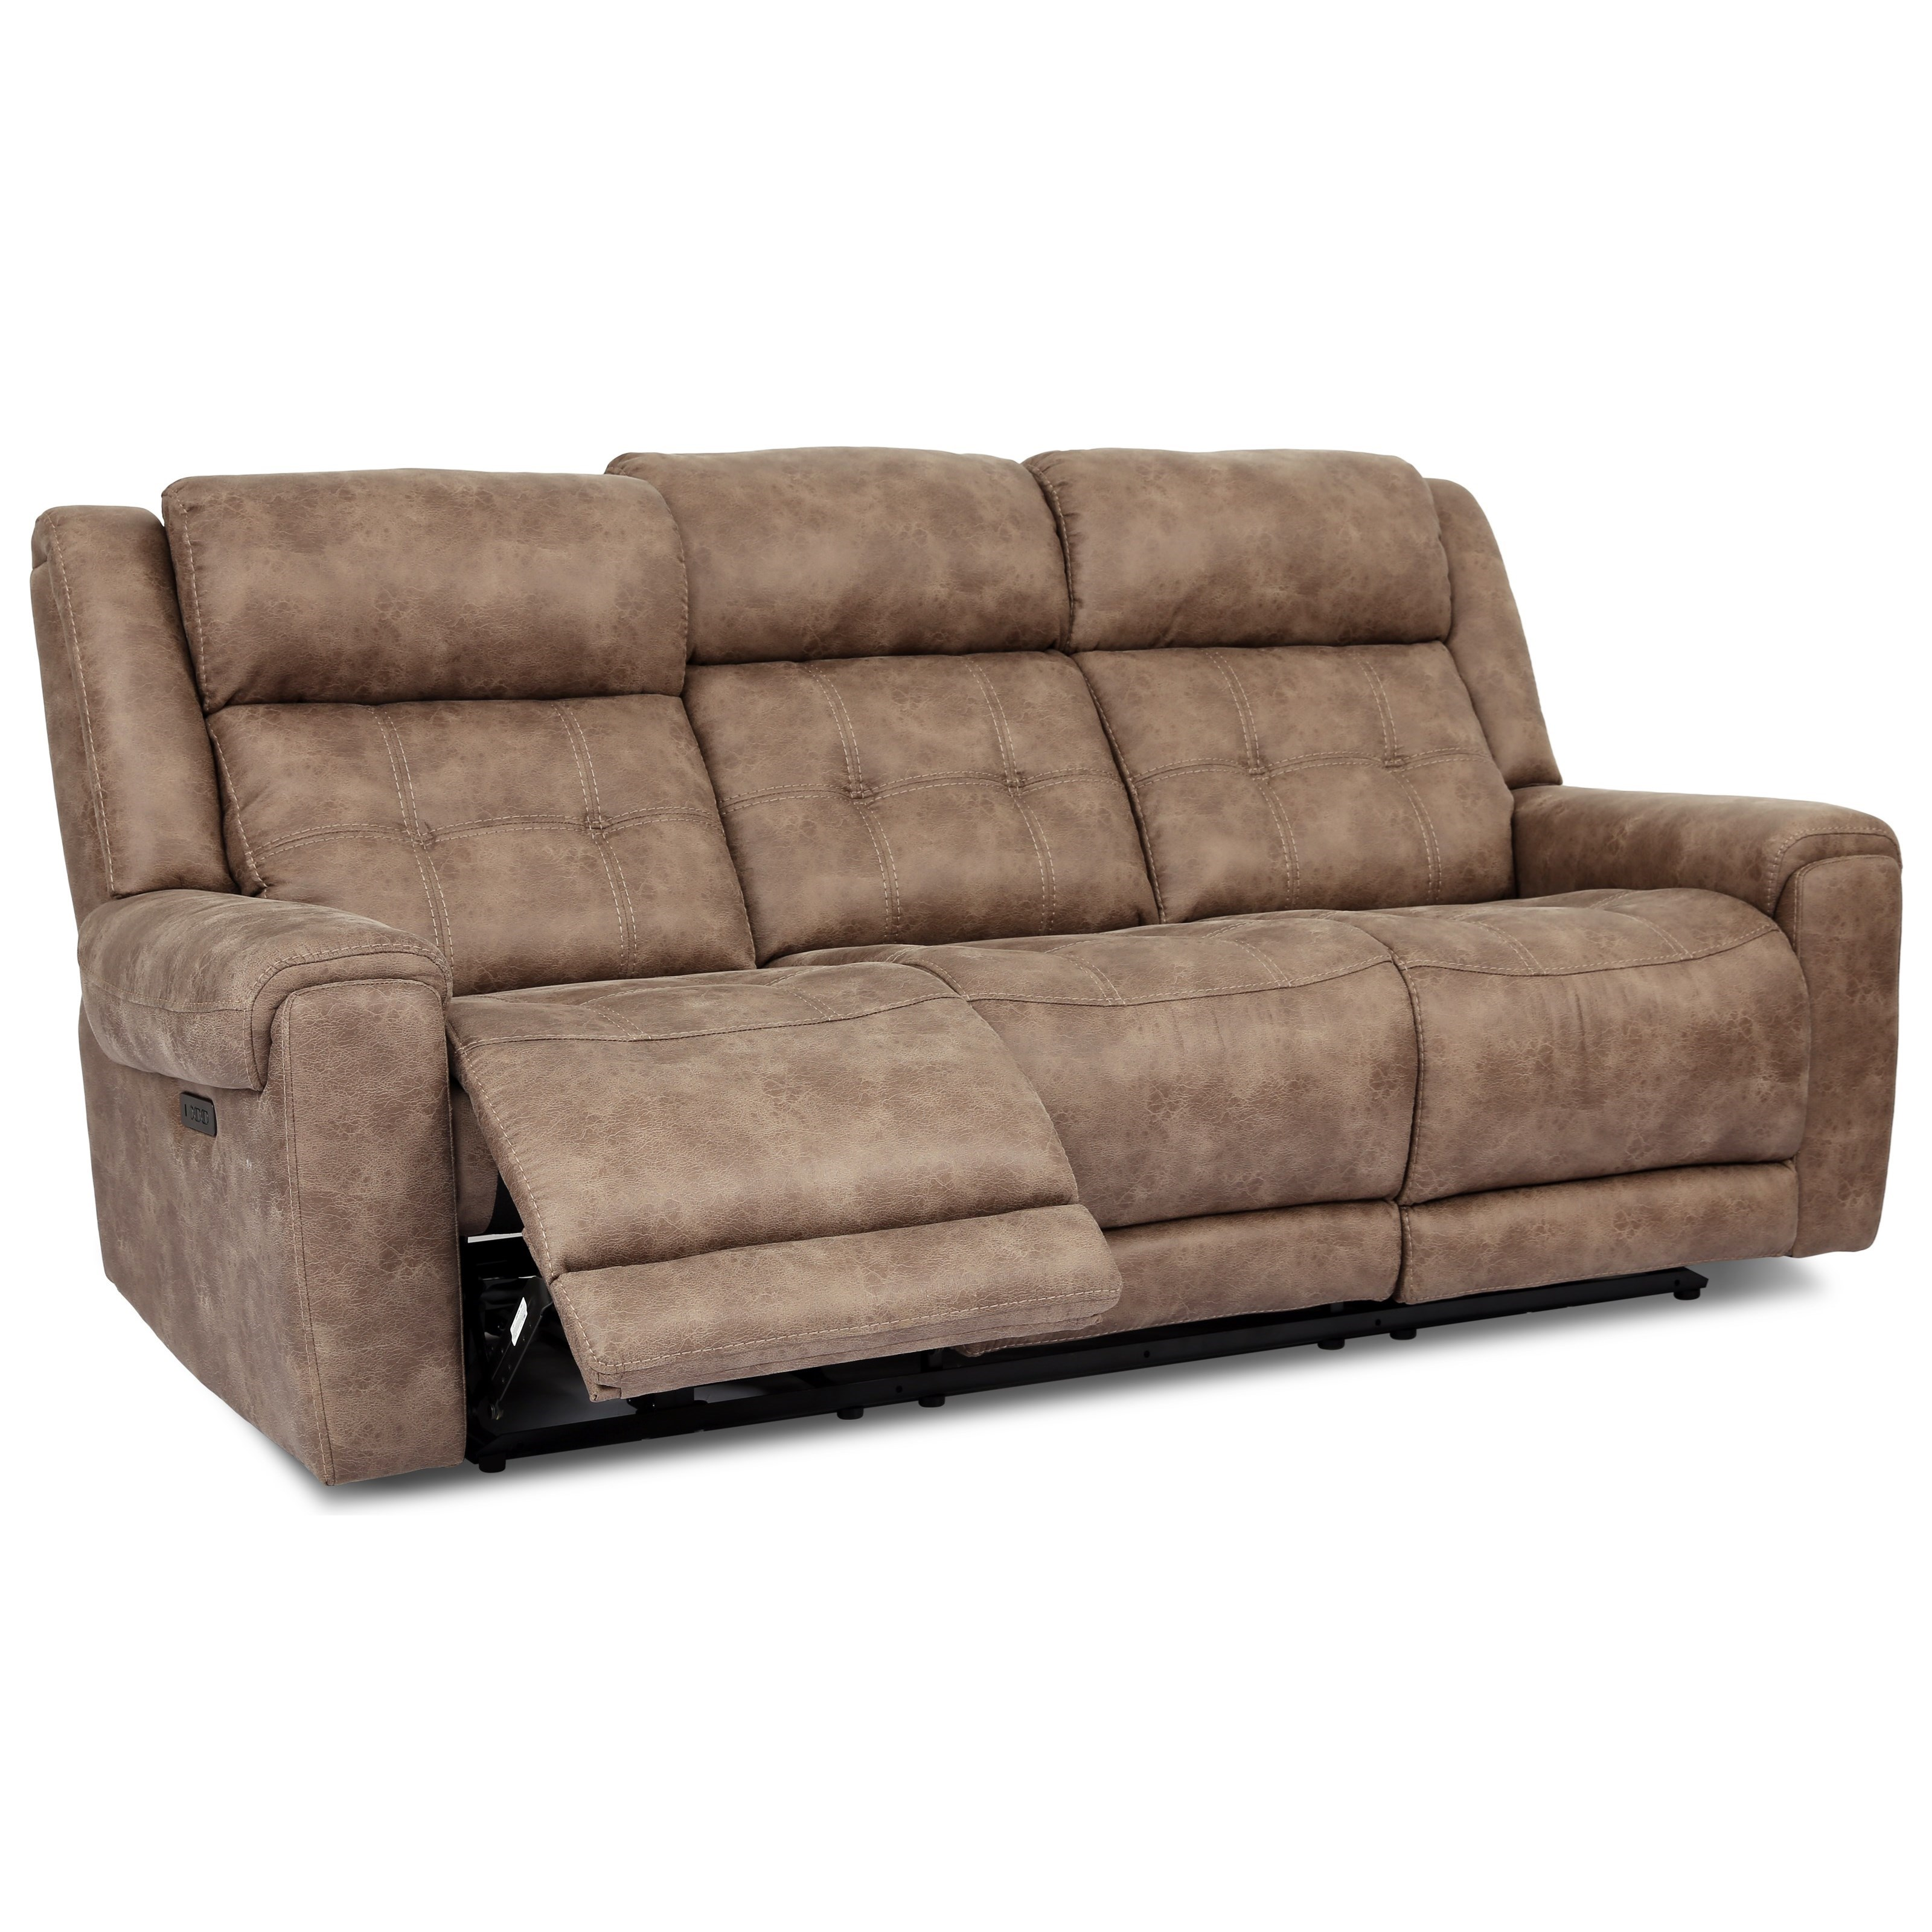 70115 Power Reclining Sofa by Cheers at Lagniappe Home Store